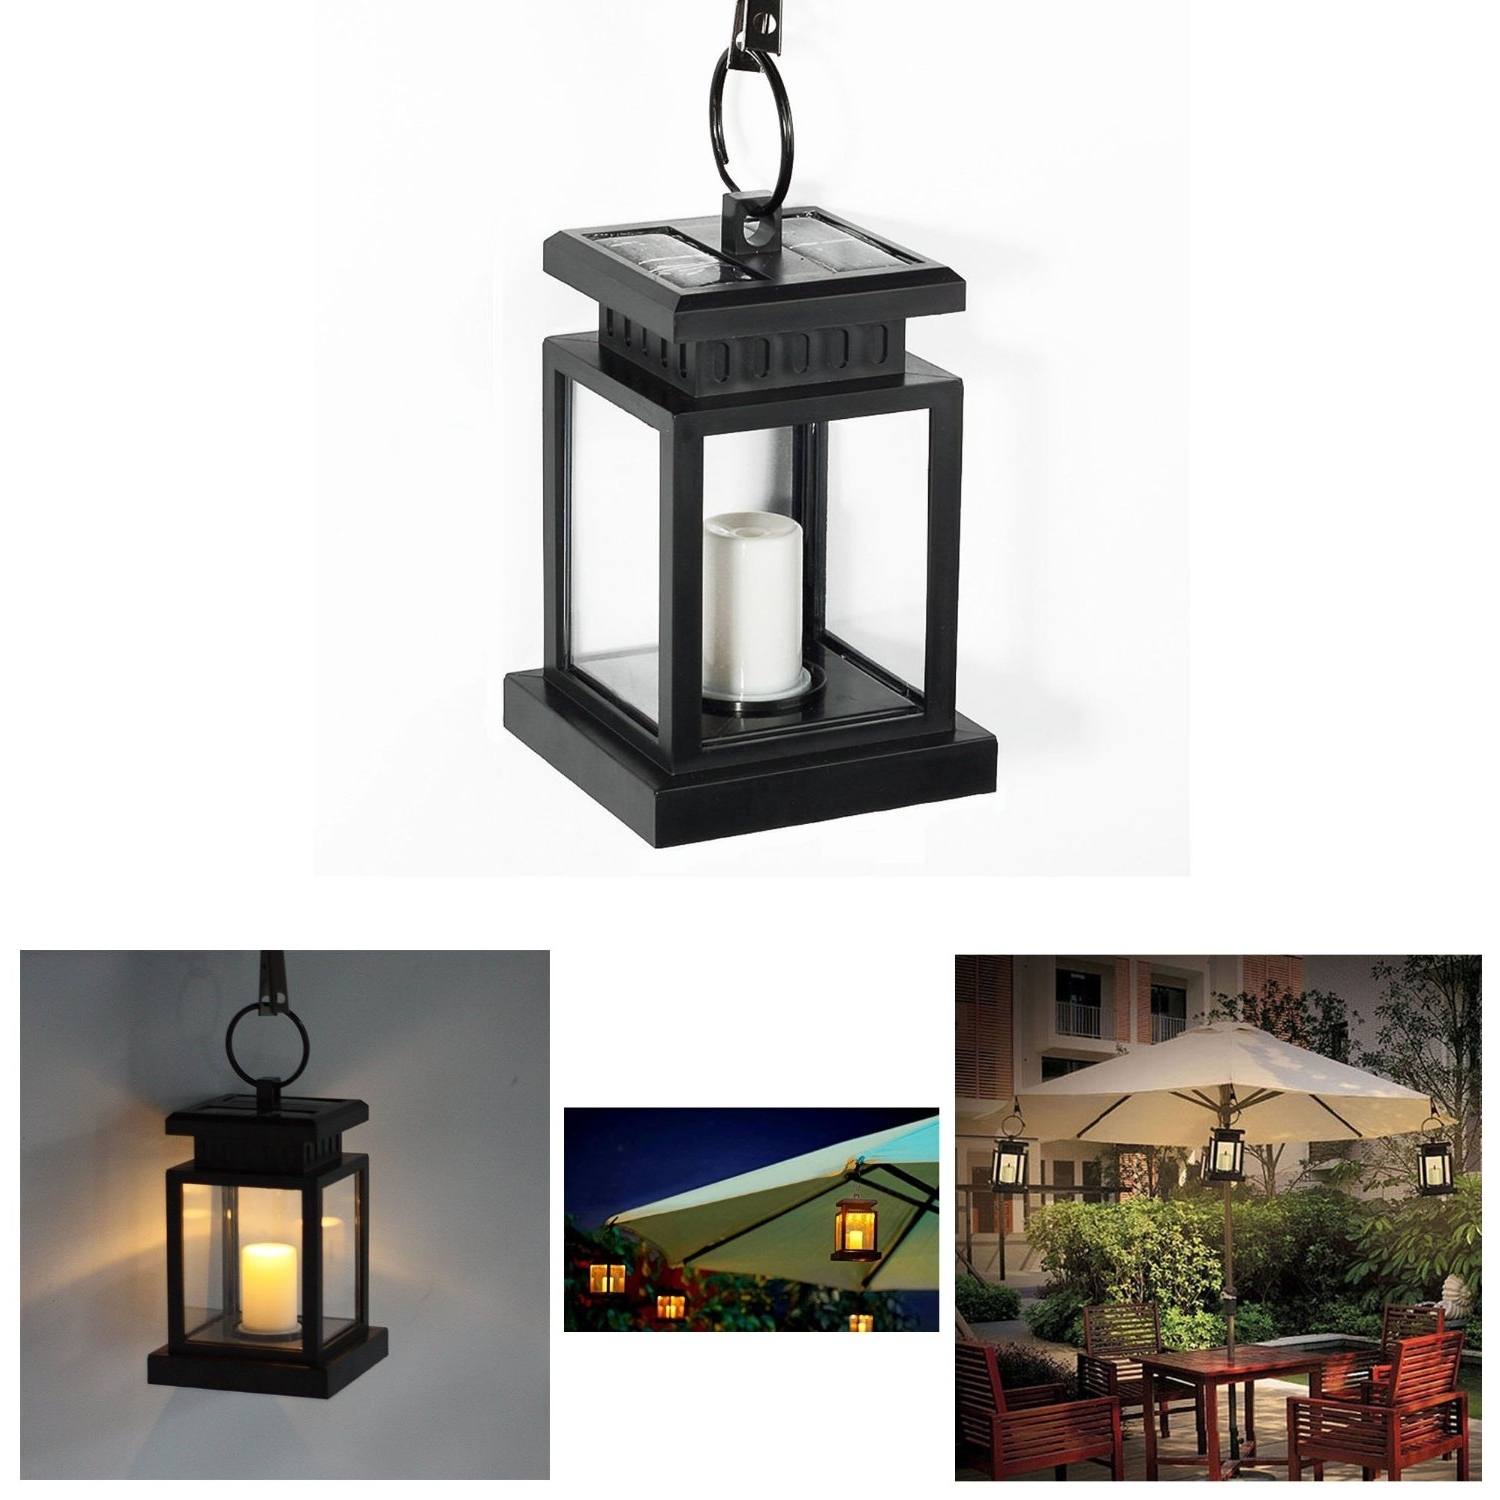 Well Known Solar Powered Hanging Umbrella Lantern Candle Led Light With Clamp With Solar Powered Outdoor Hanging Lanterns (View 18 of 20)